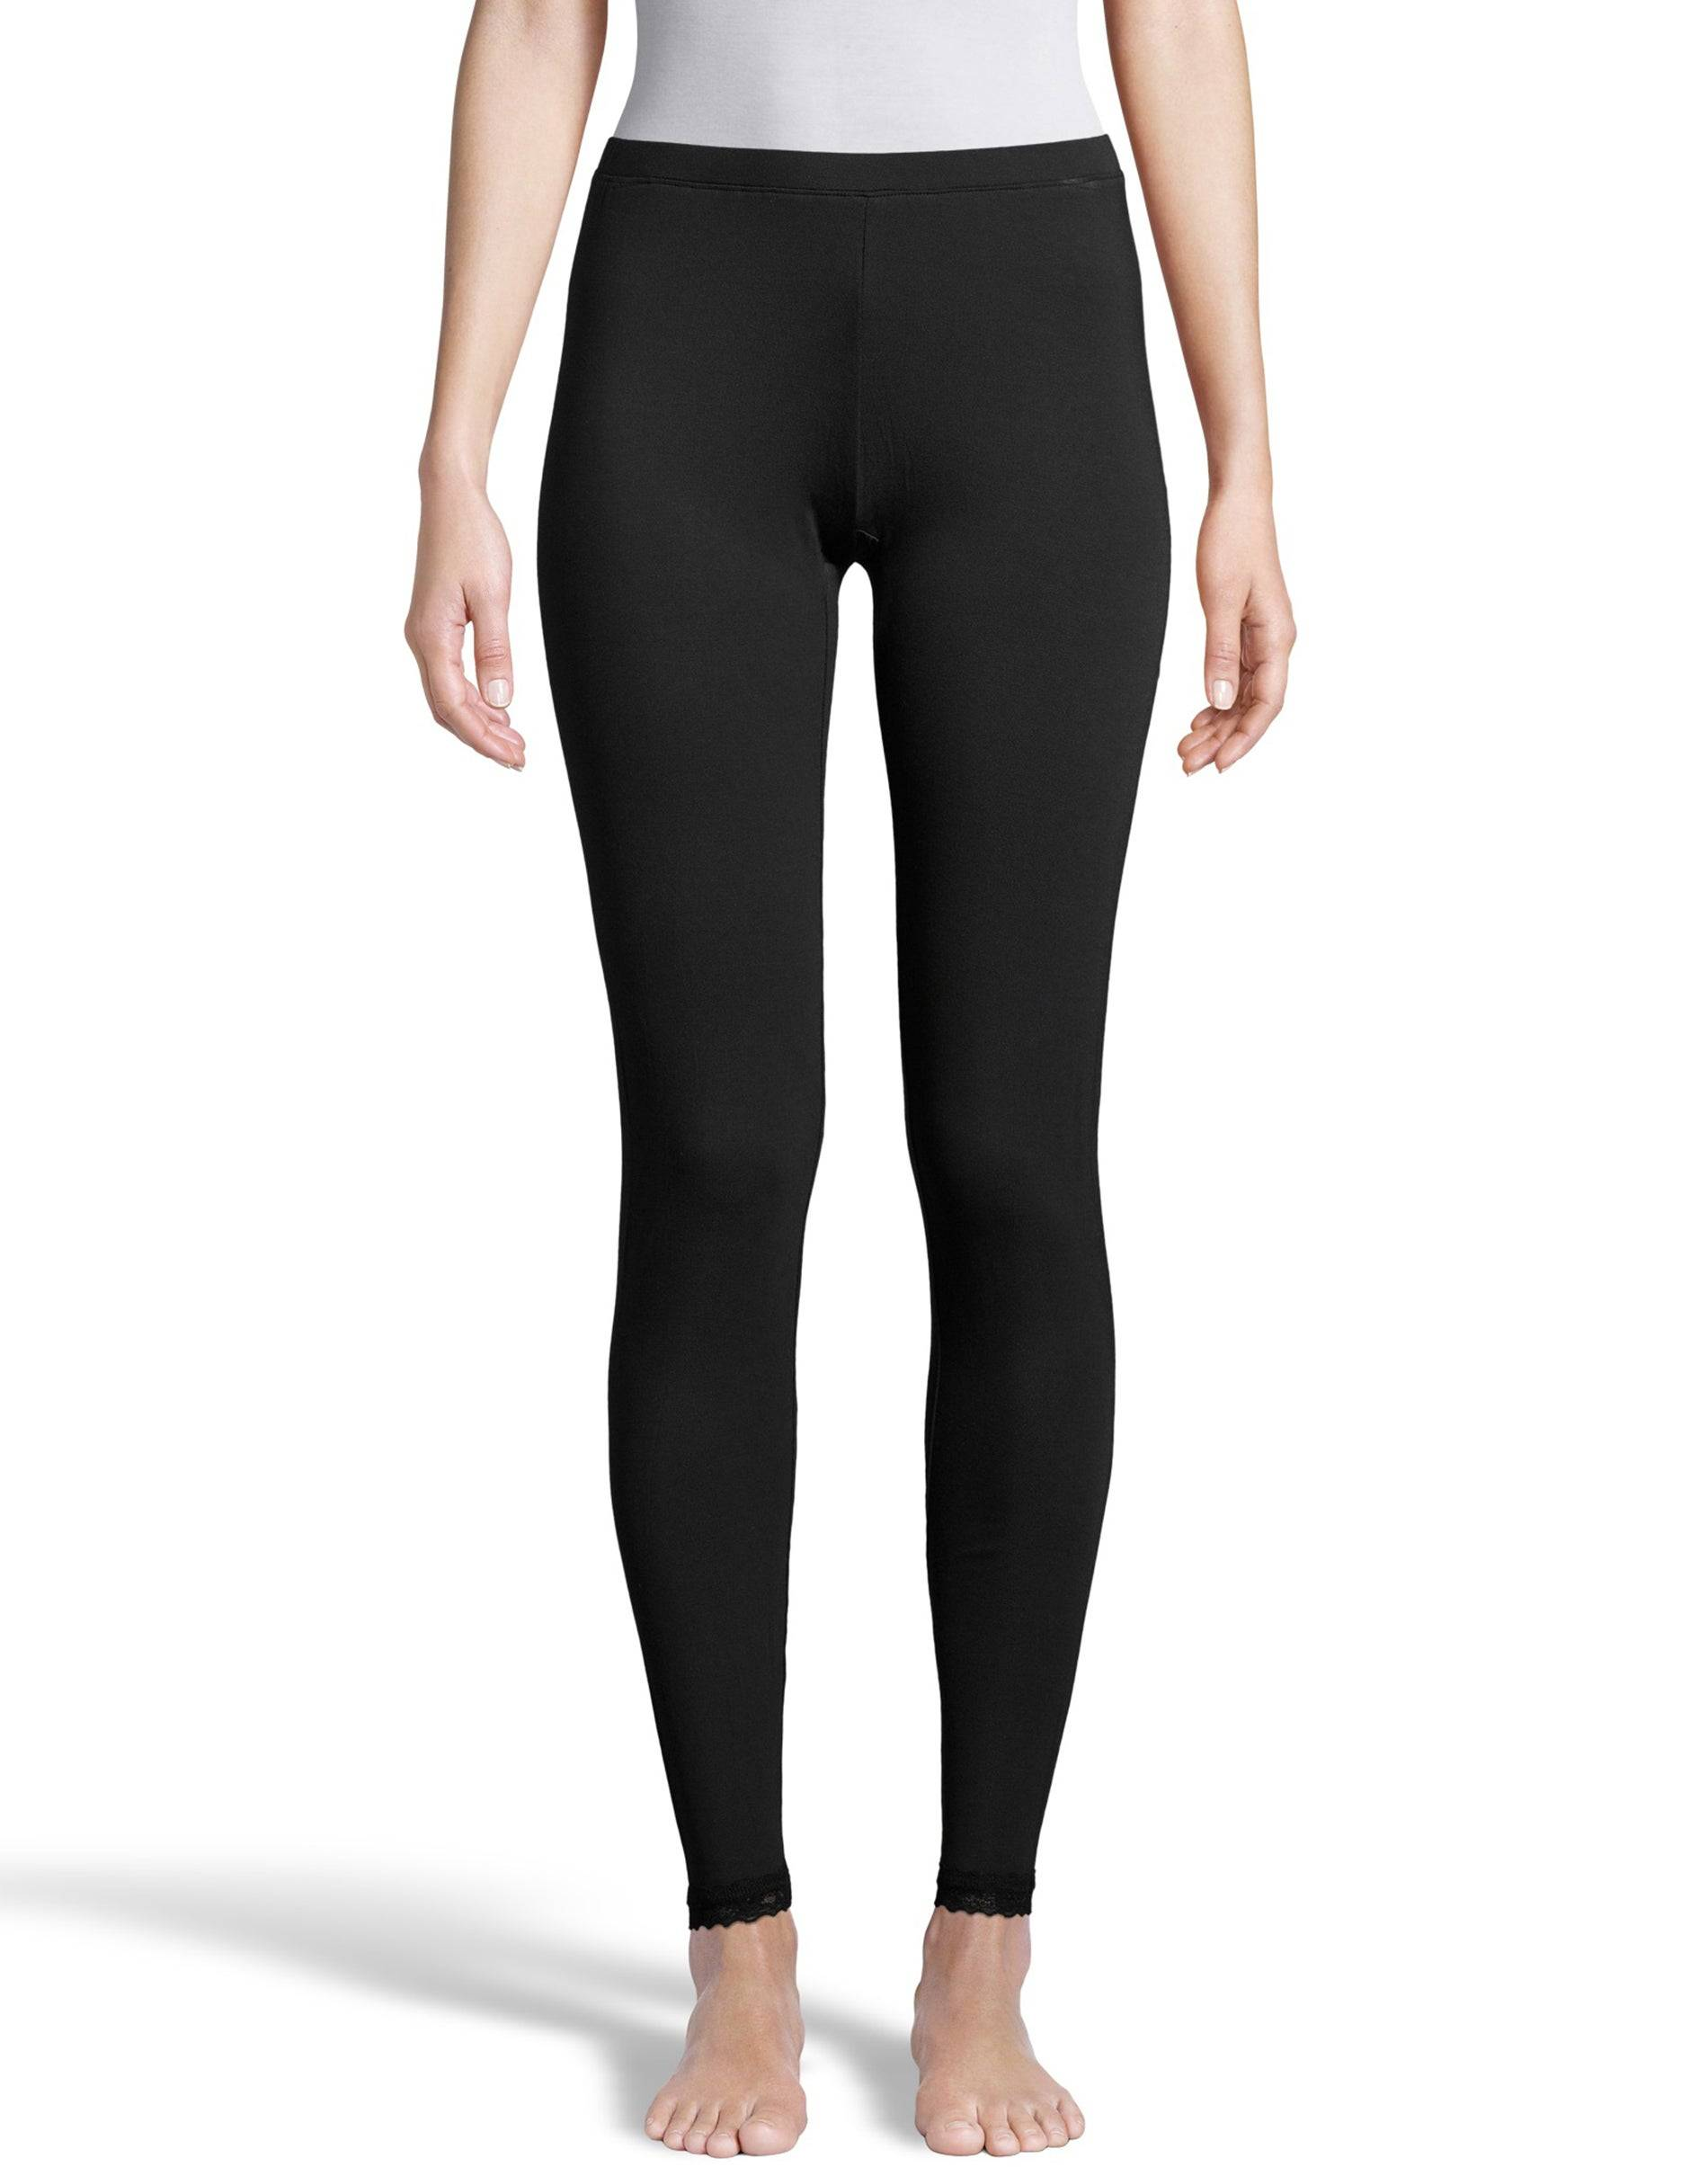 Hanes Women's Comfort Collection Thermal Pant Black M